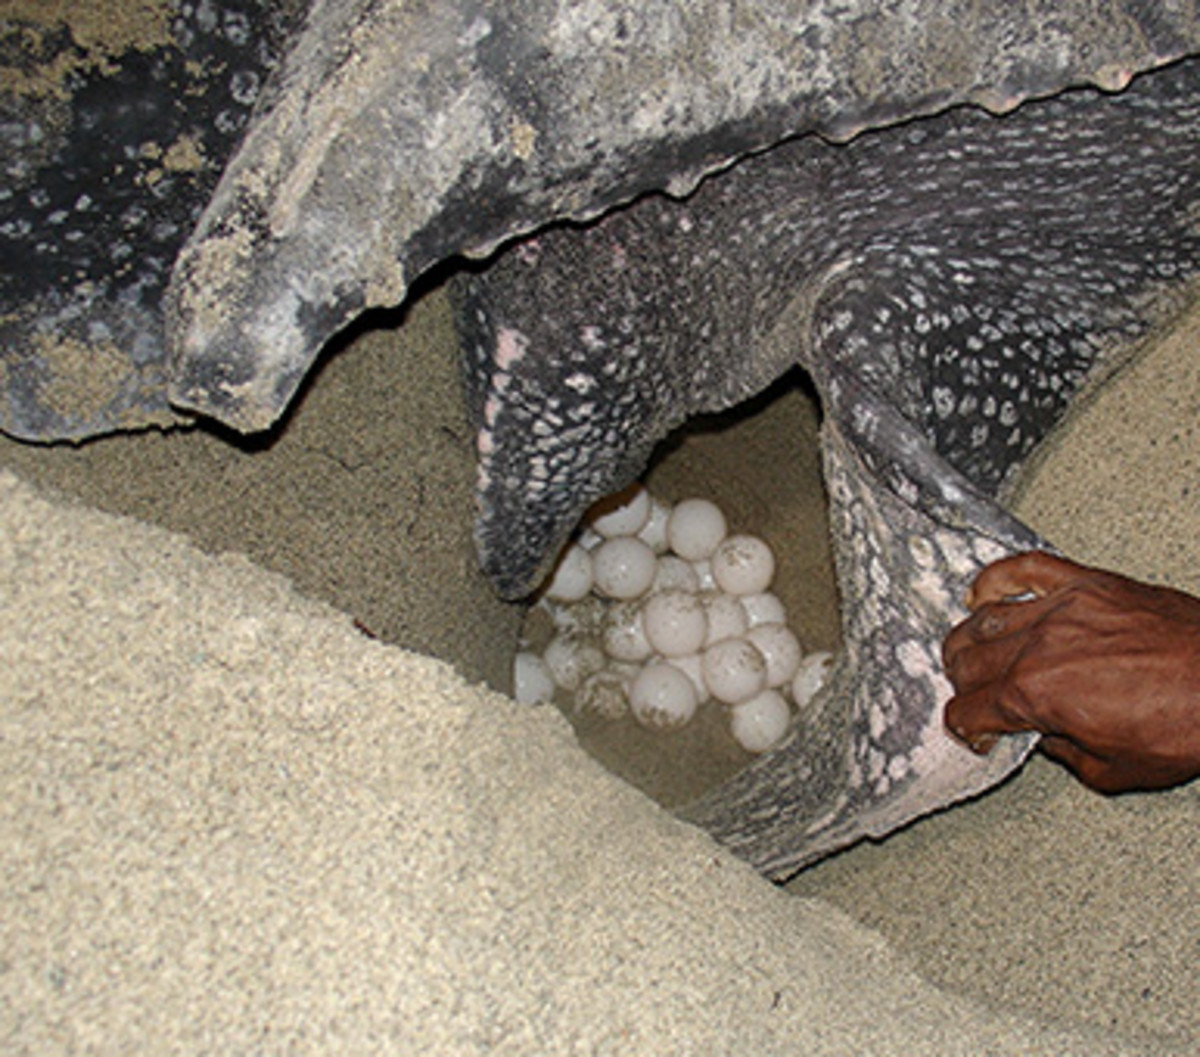 Eggs of leatherback turtle